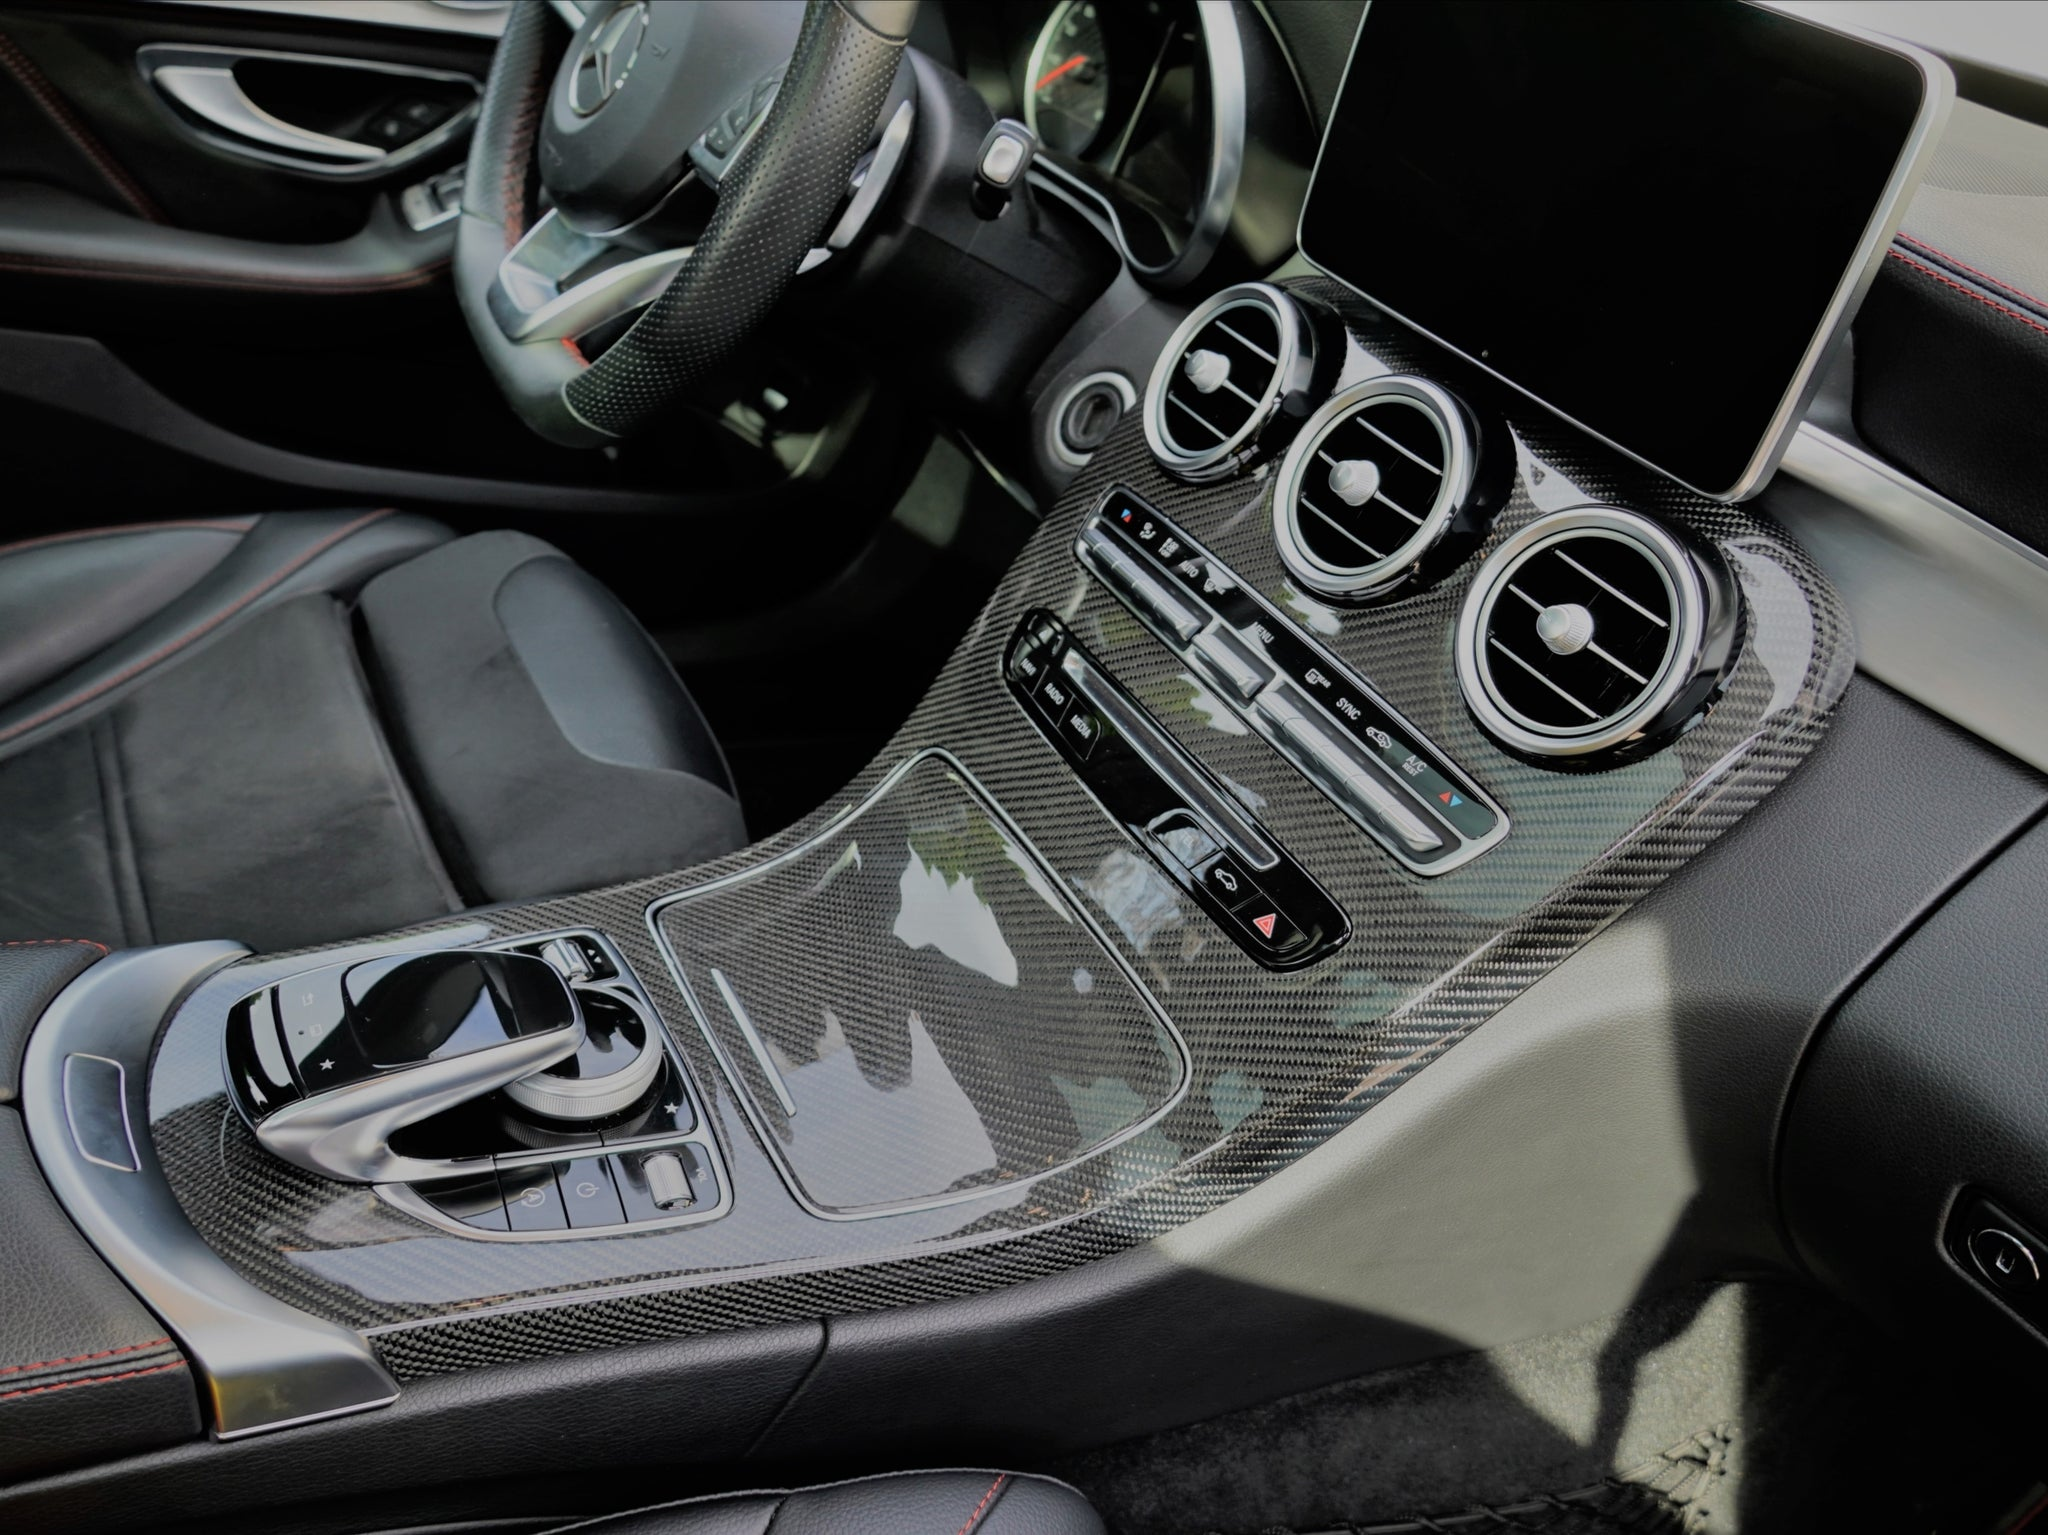 Center Console Replacements - Interior Accessories - Yomato Carbon - Montreal Canada